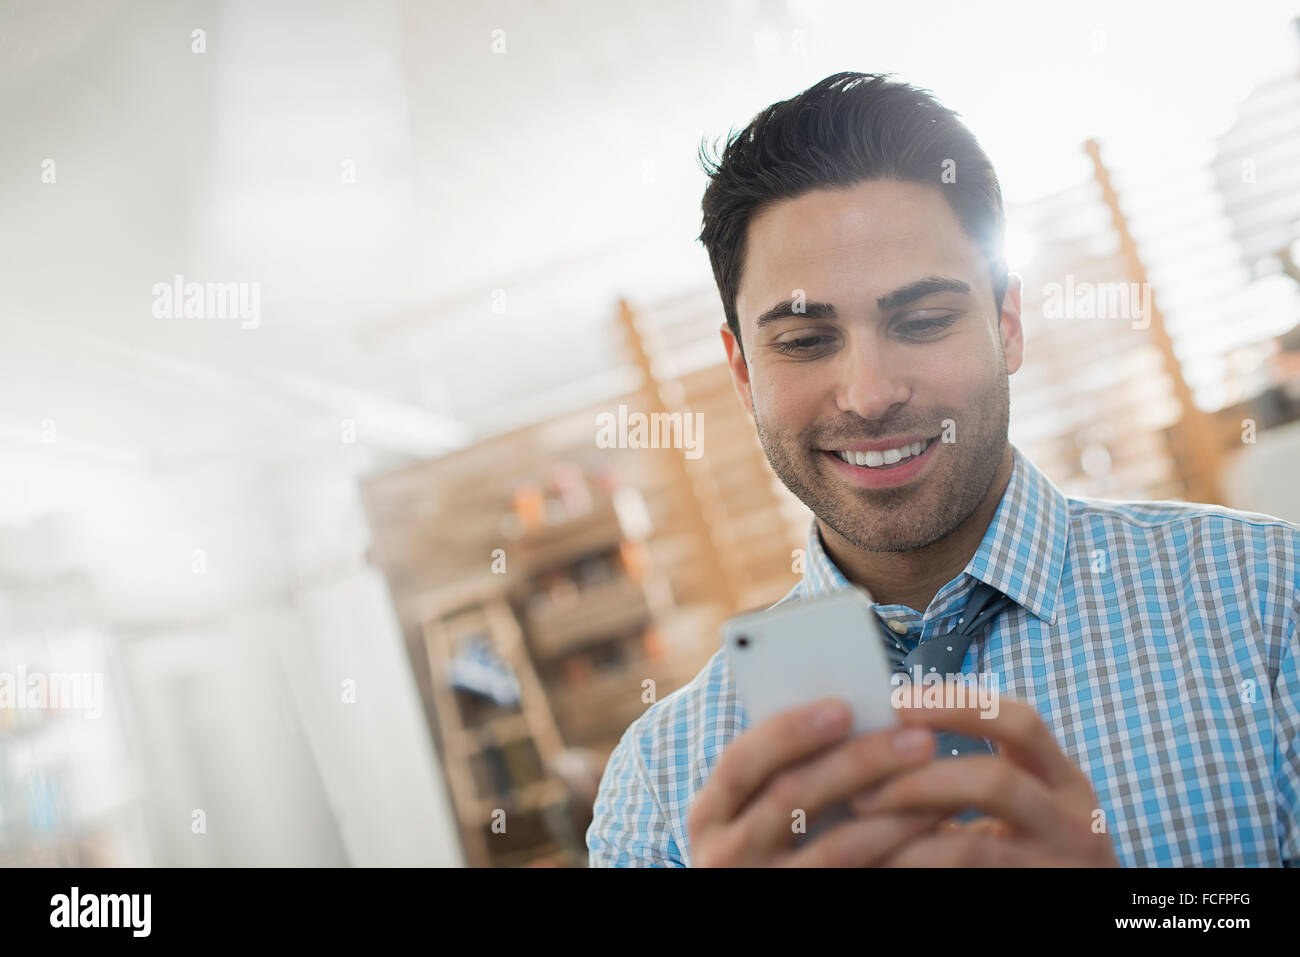 A man checking his smart phone. - Stock Image